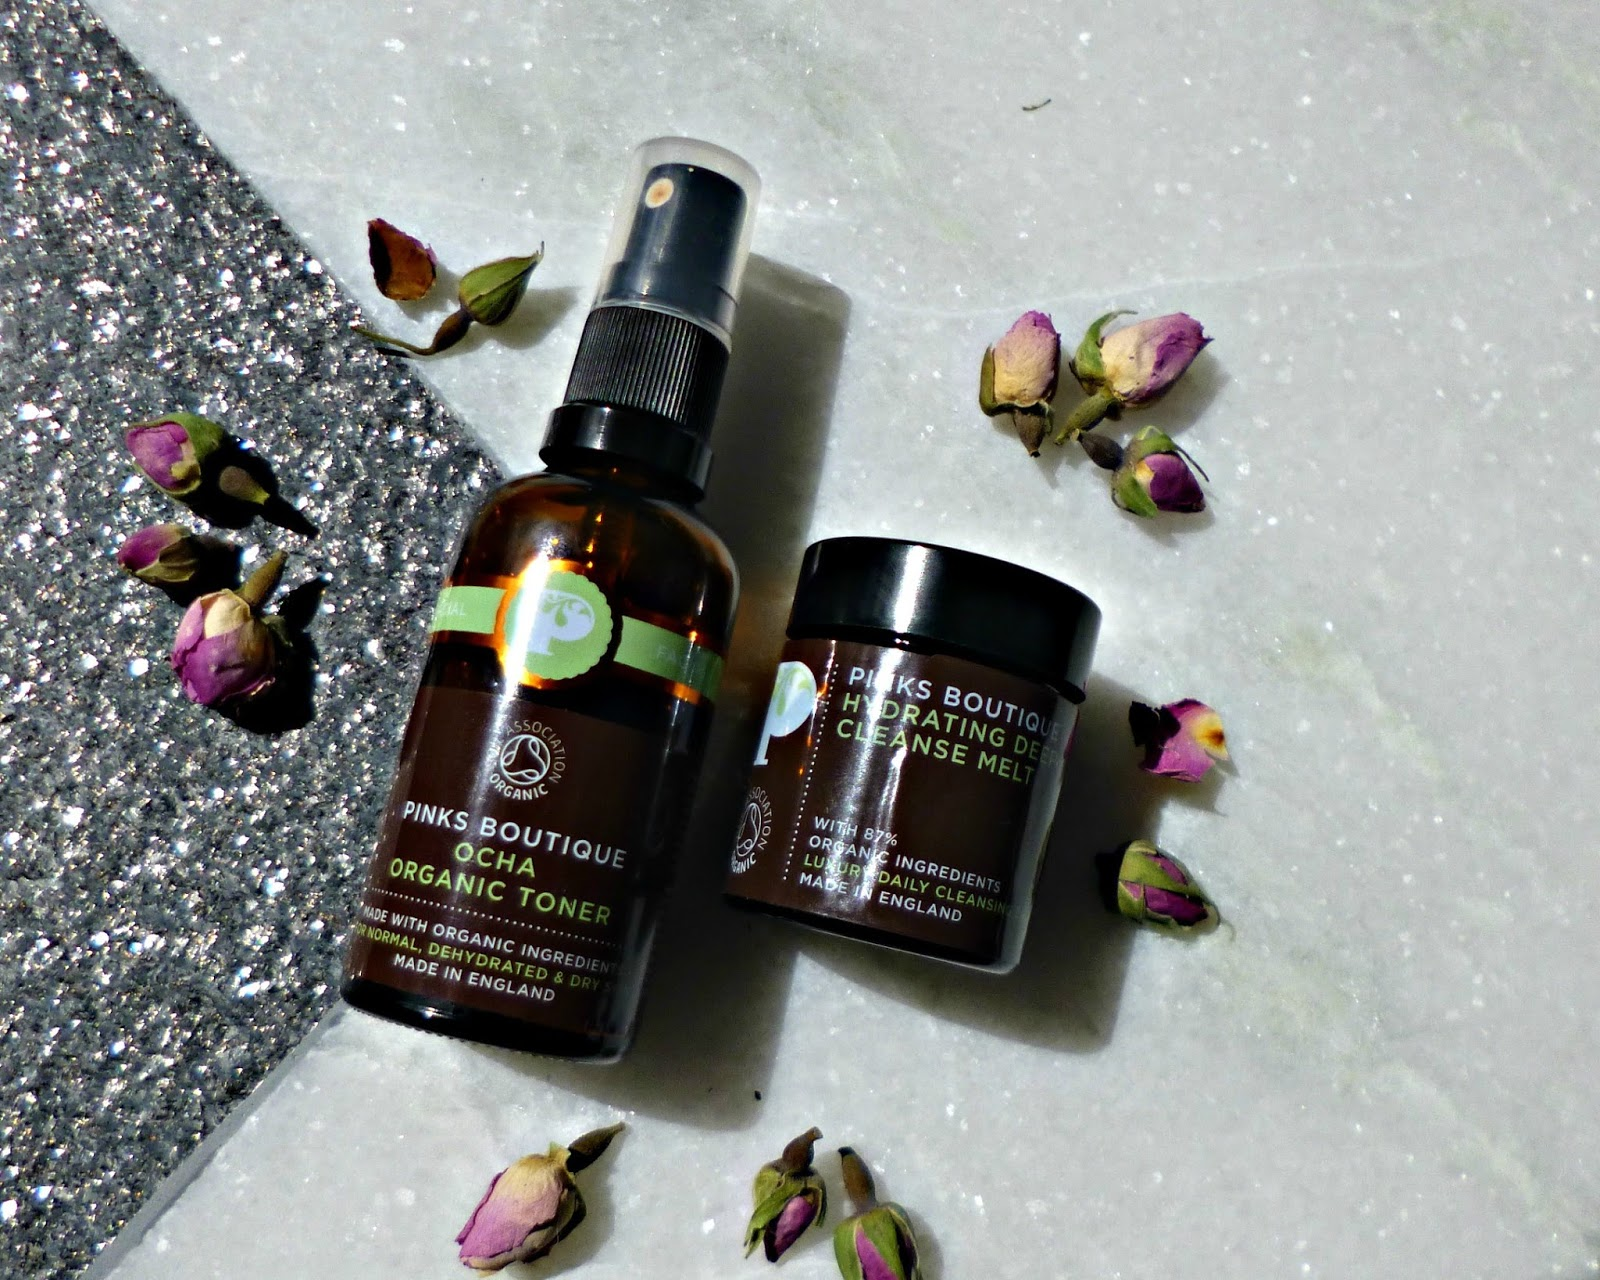 Cleanse and Tone with Pinks Boutique